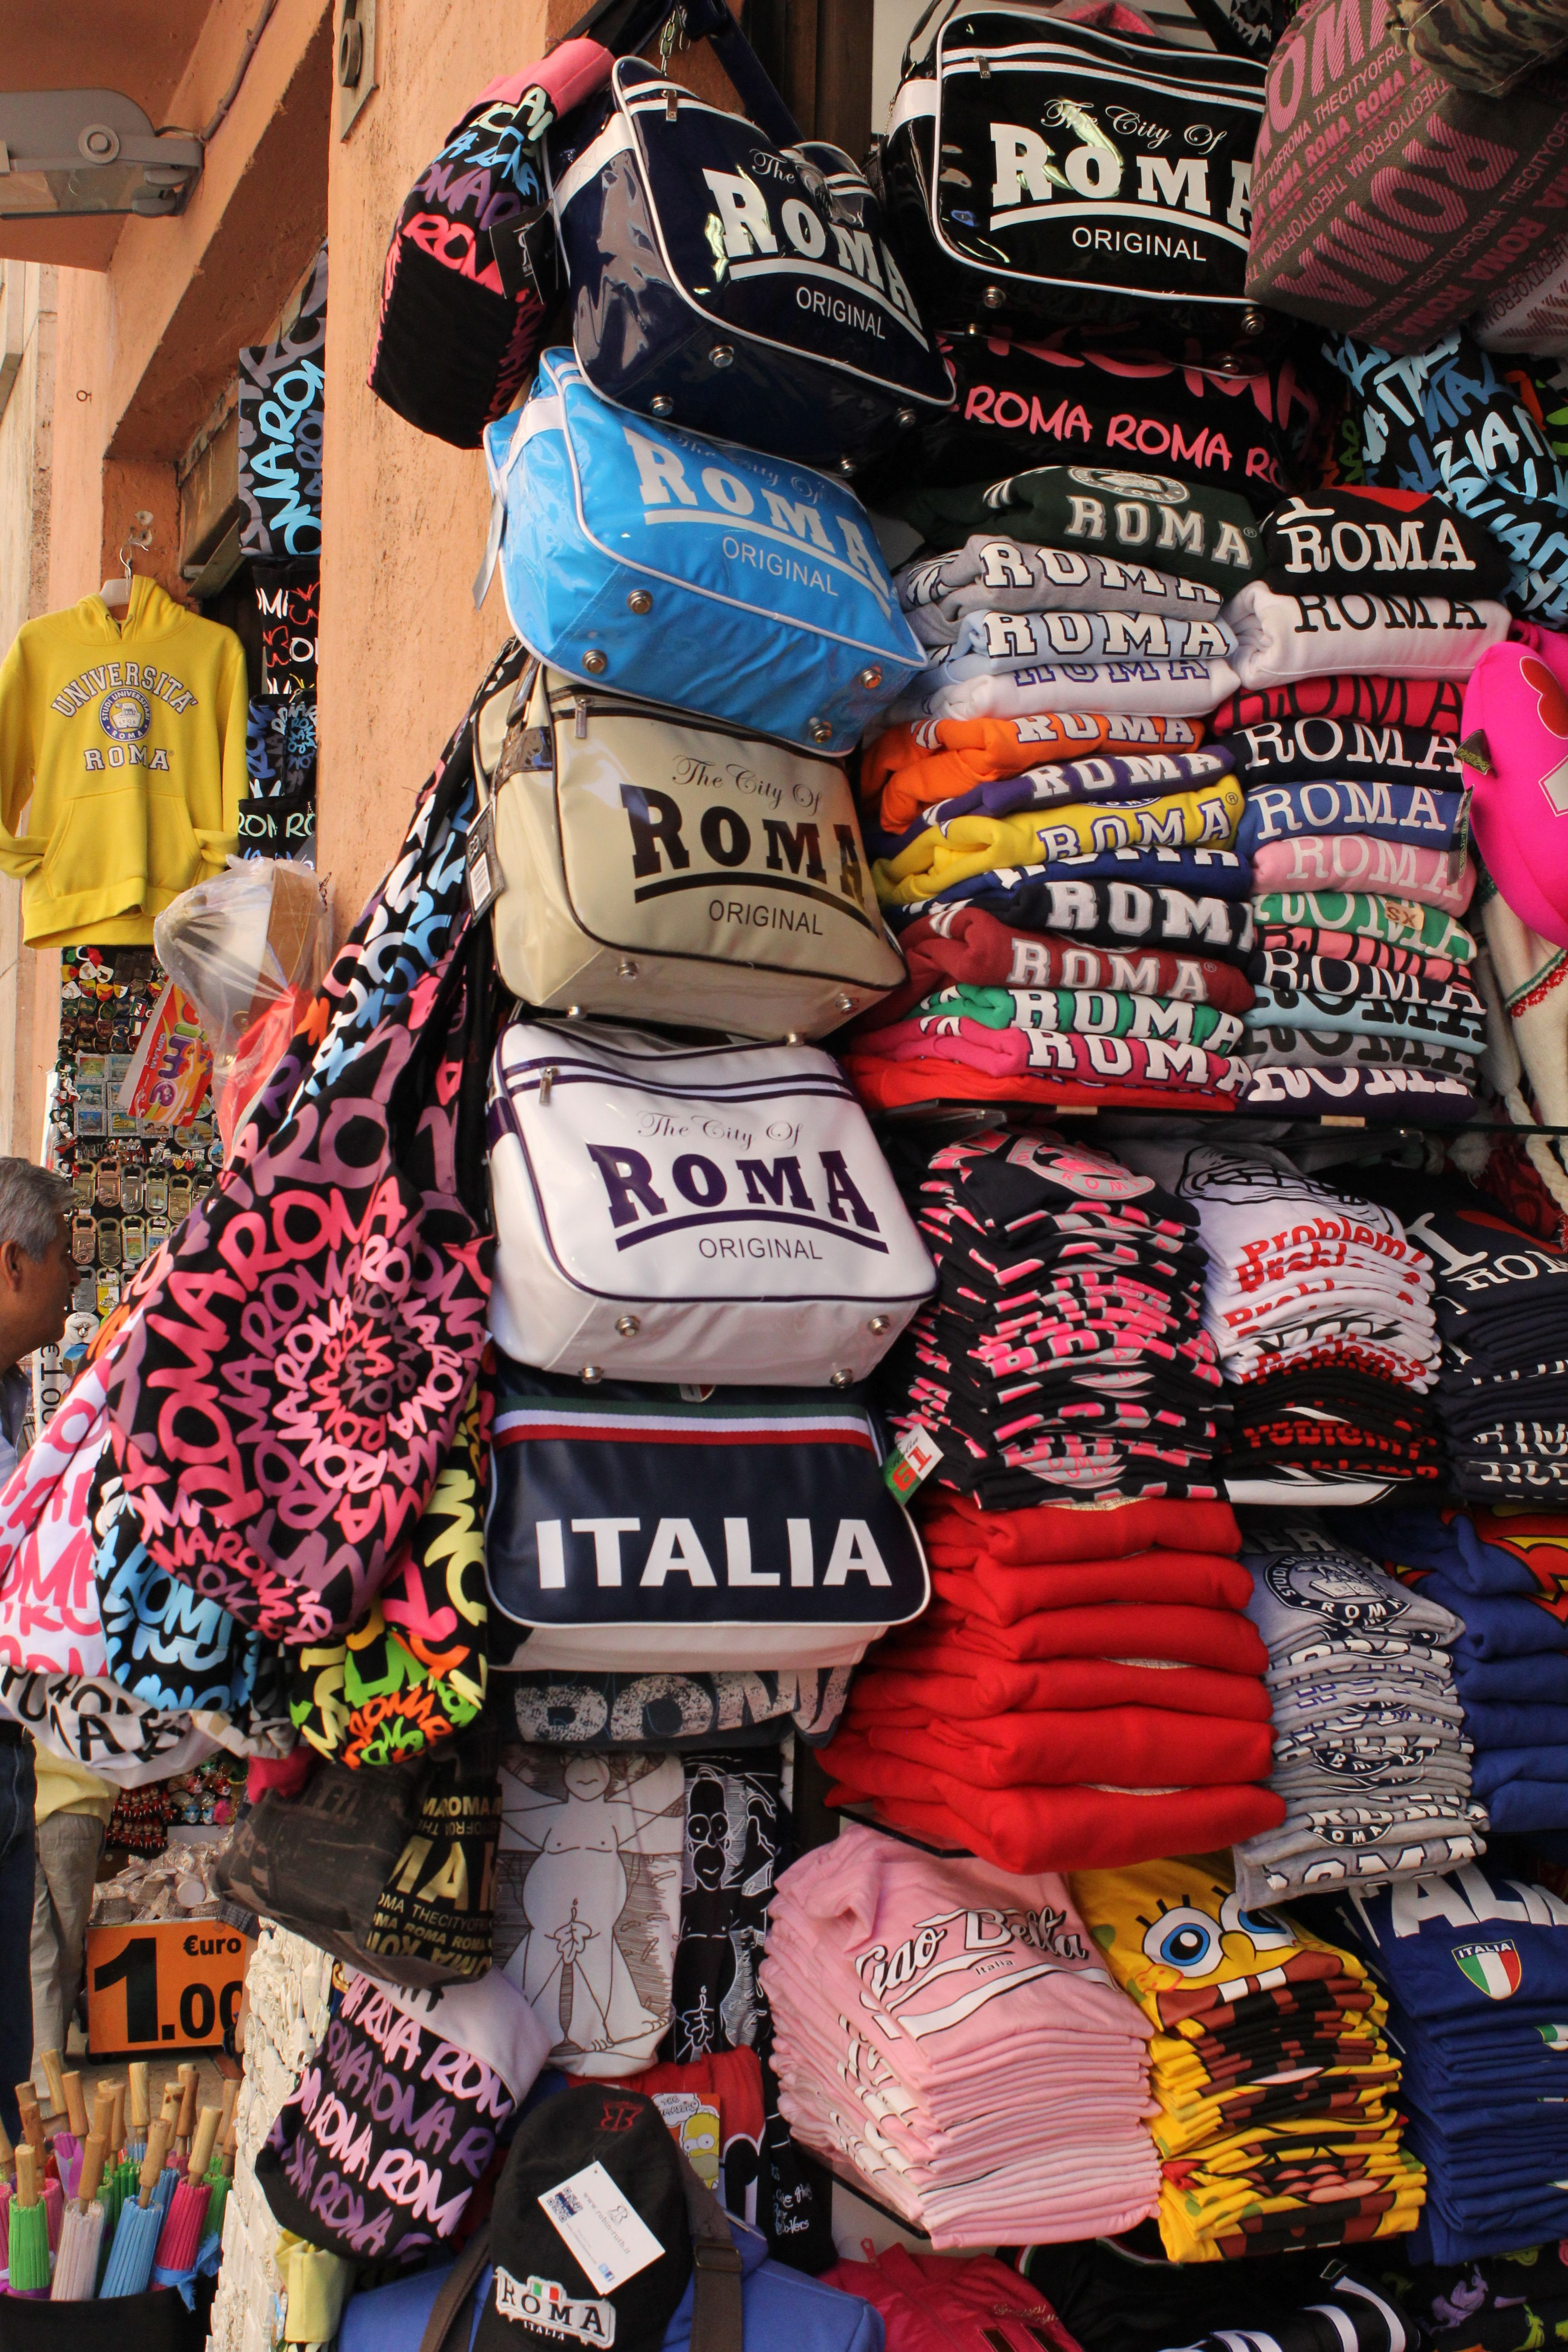 Pin By Jackie Garvey On Destinations I Have Been To Rome Souvenirs From Italy Italy